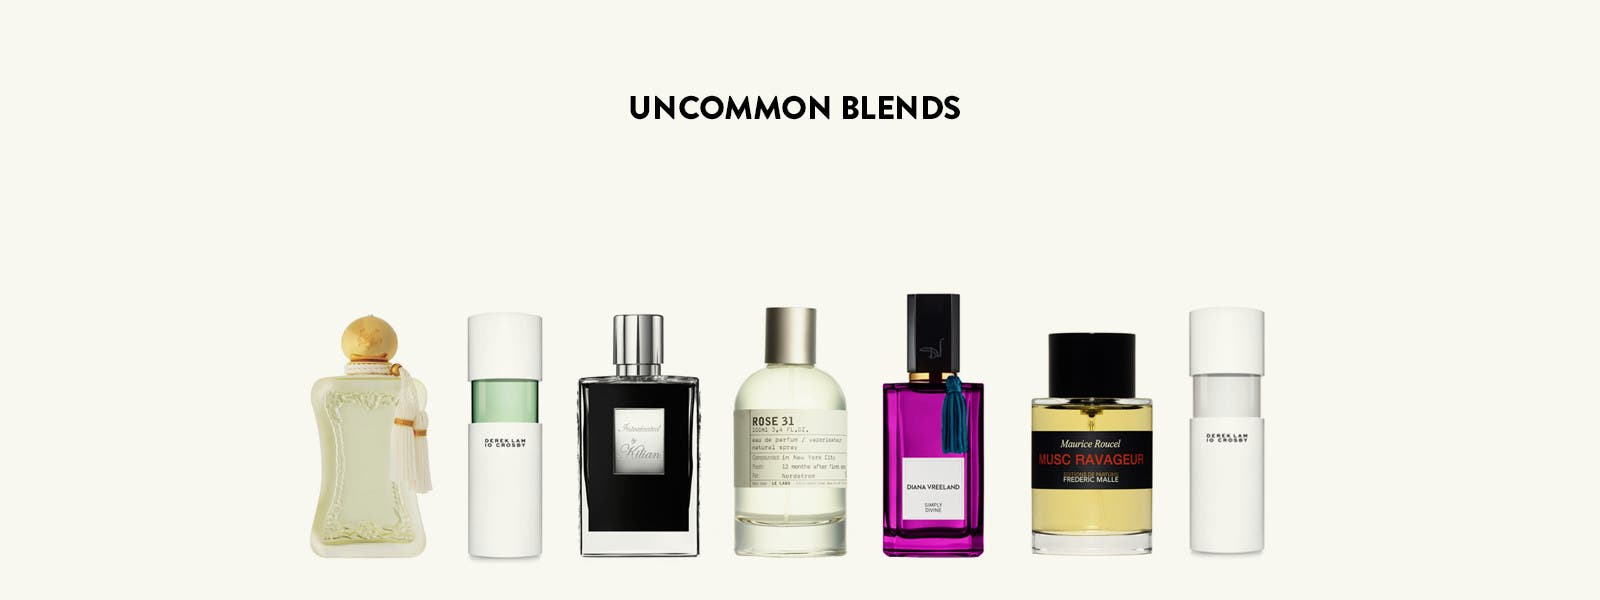 Uncommon blends.